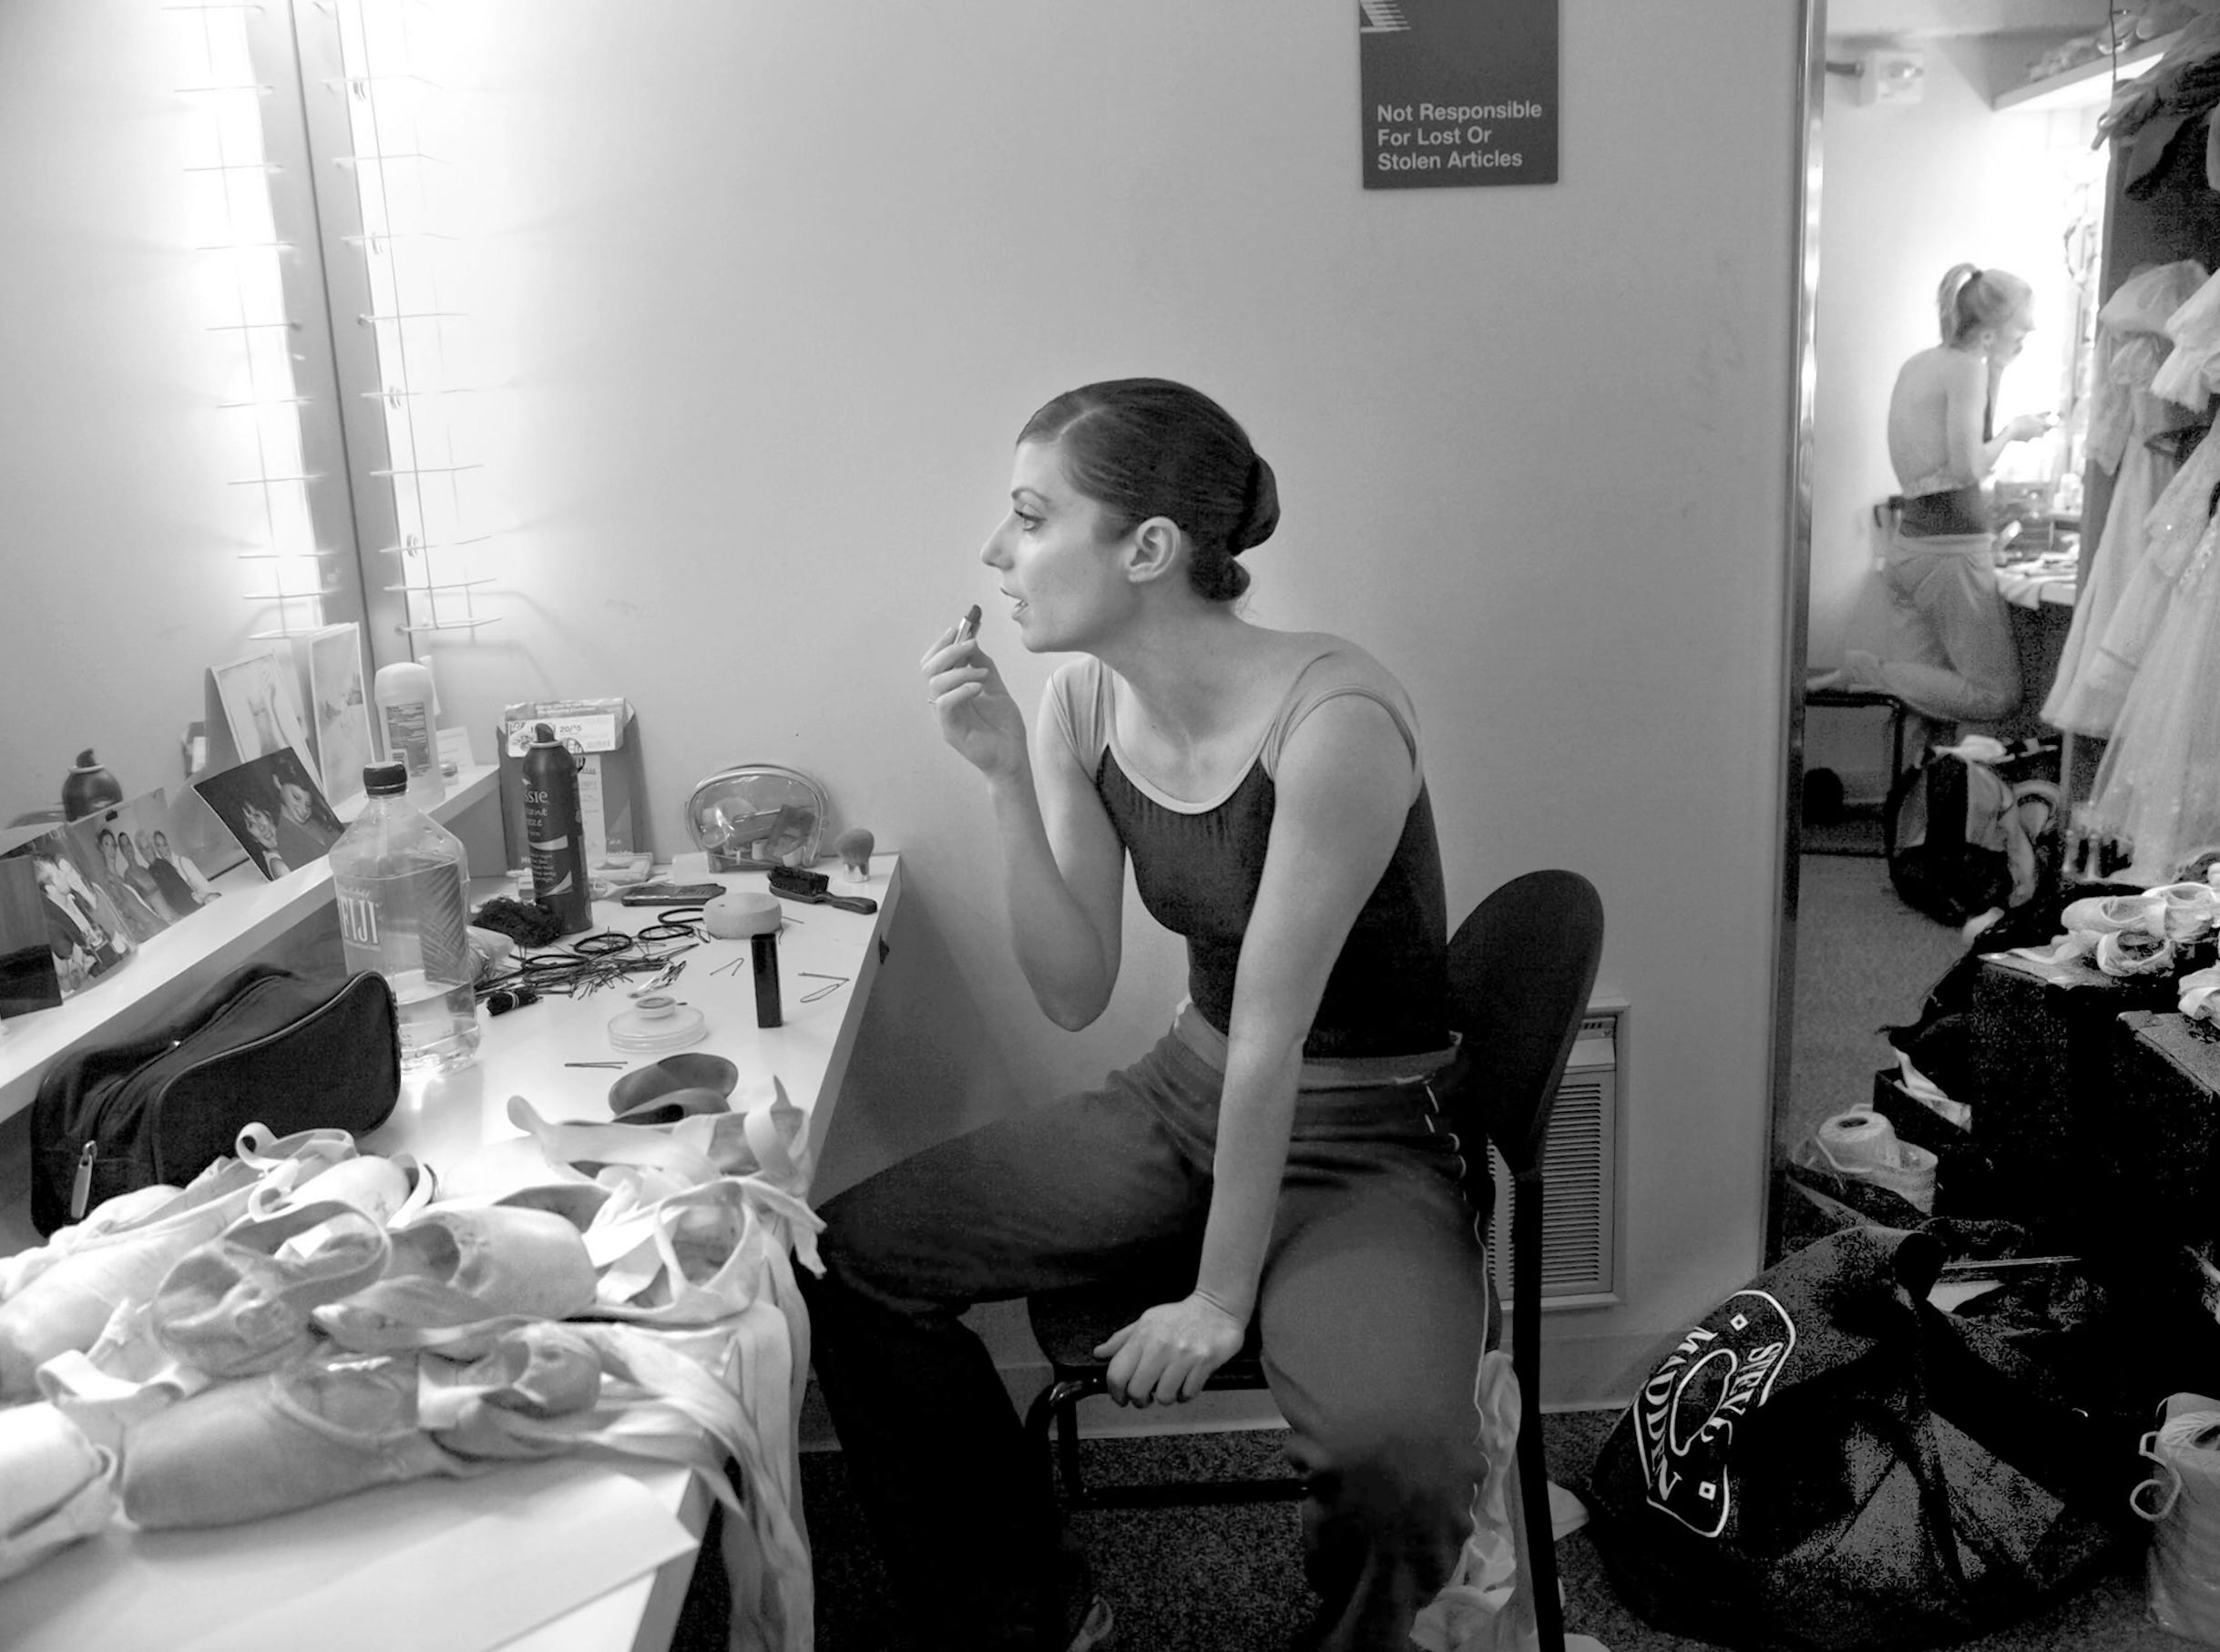 ORG XMIT: MJS0912191802329759 ORG XMIT: MJS0812051154290800 oneamong nws kwg 5--Milwaukee Ballet dancer Susan Gartell does her make-up in her dressing room before dancing in Saturday's performance of The Nutcracker at Marcus Center for Performing Arts in Milwaukee, December 19, 2009. Most dancers have grown up performing a variety of roles in The Nutcracker including Gartell who danced in her first Nutcracker performance at 9 years old.  Performances continue through Sunday, December 27. PHOTO: KRISTYNA WENTZ-GRAFF / KWENTZ@JOURNALSENTINEL.COM